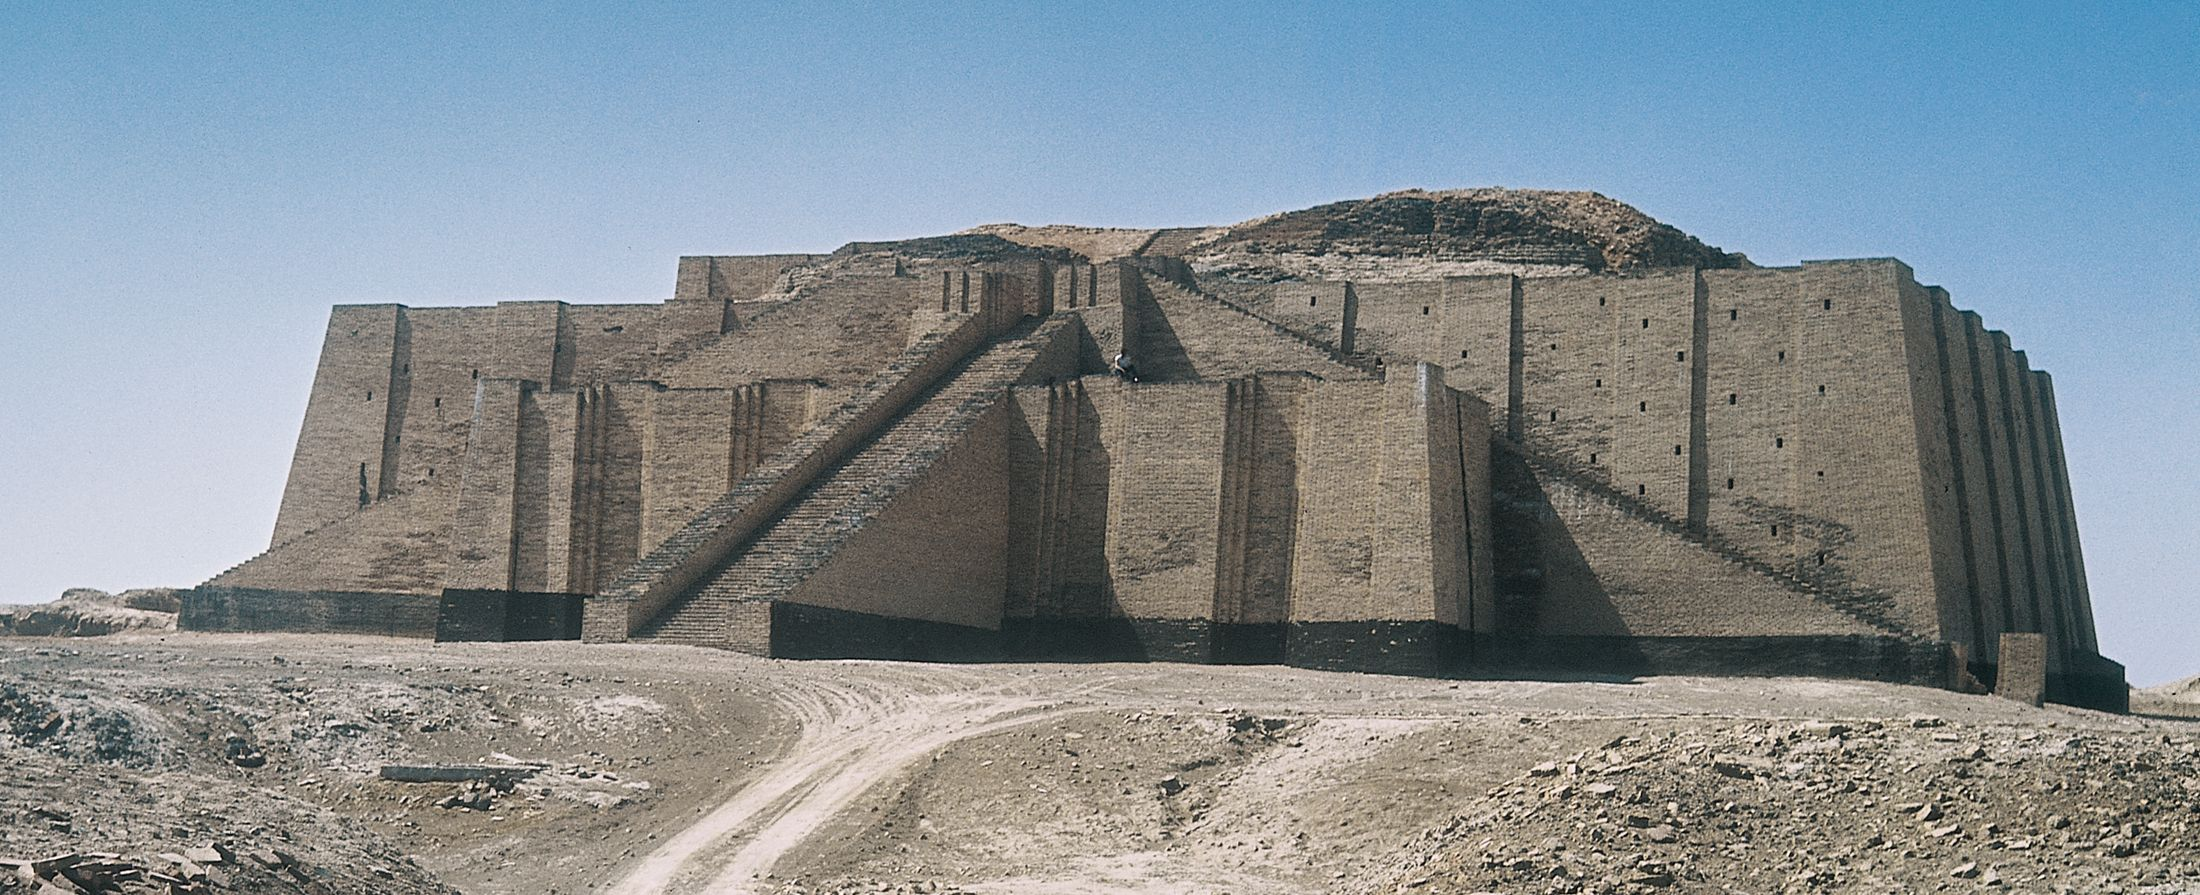 Ancient Mesopotamian Art And Architecture northeaster facade fith restored stairs, ziggurat at ur | history